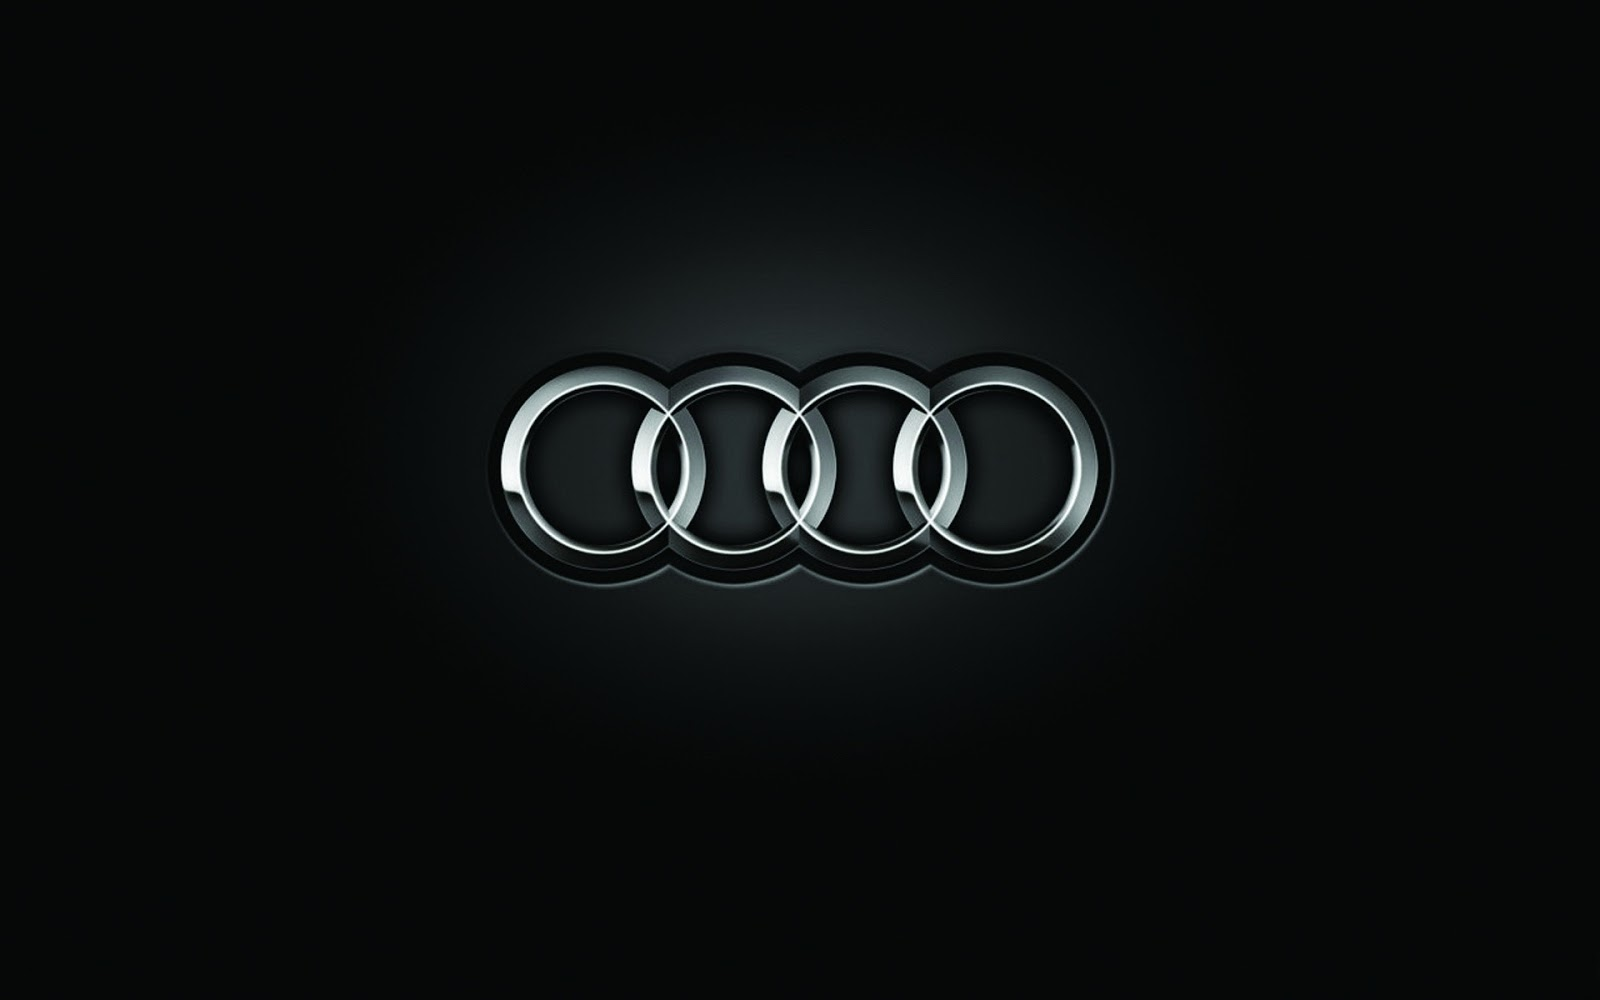 Audi Logo Audi Car Symbol Meaning And History Car Brand